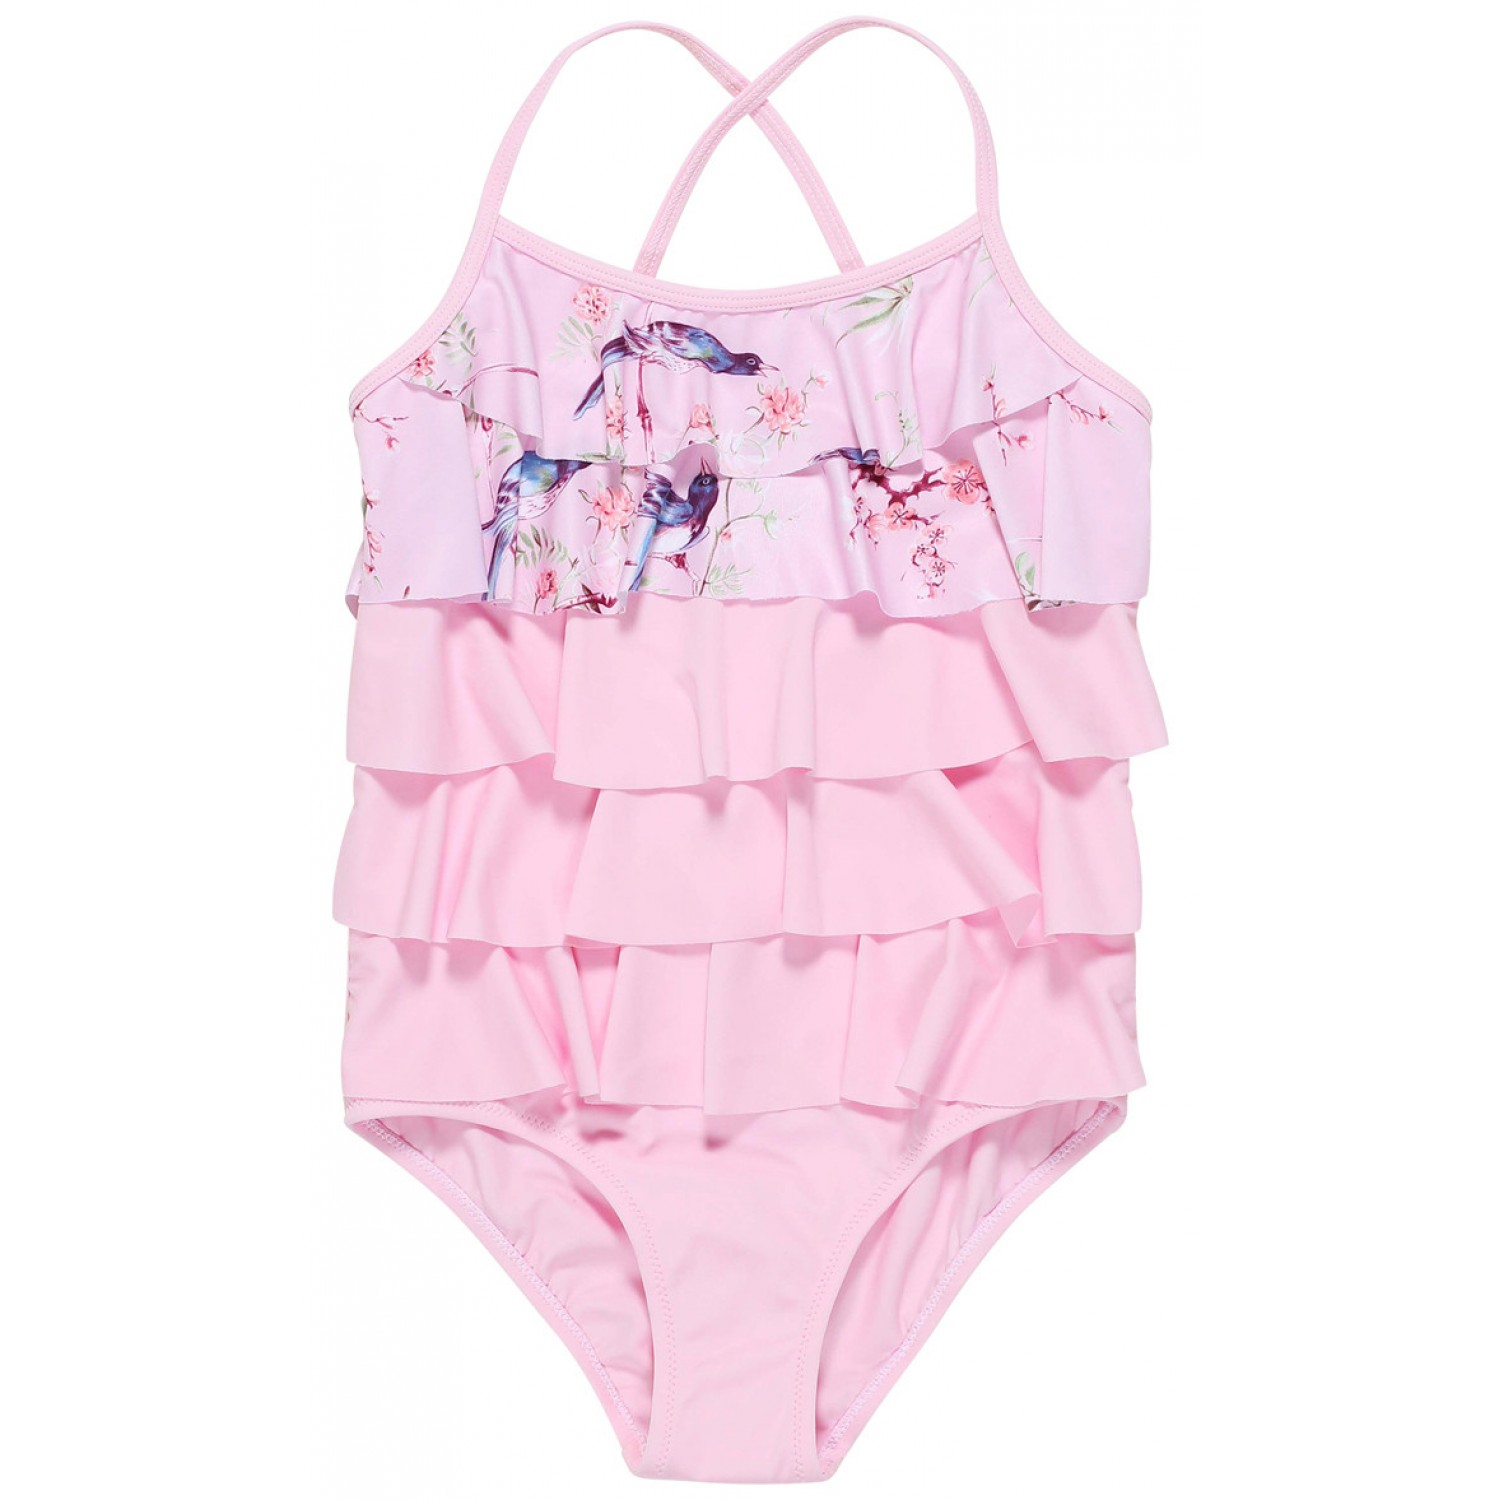 Juniors Swimsuits | Frilly Swimsuit | Tankini Swimsuits for Juniors